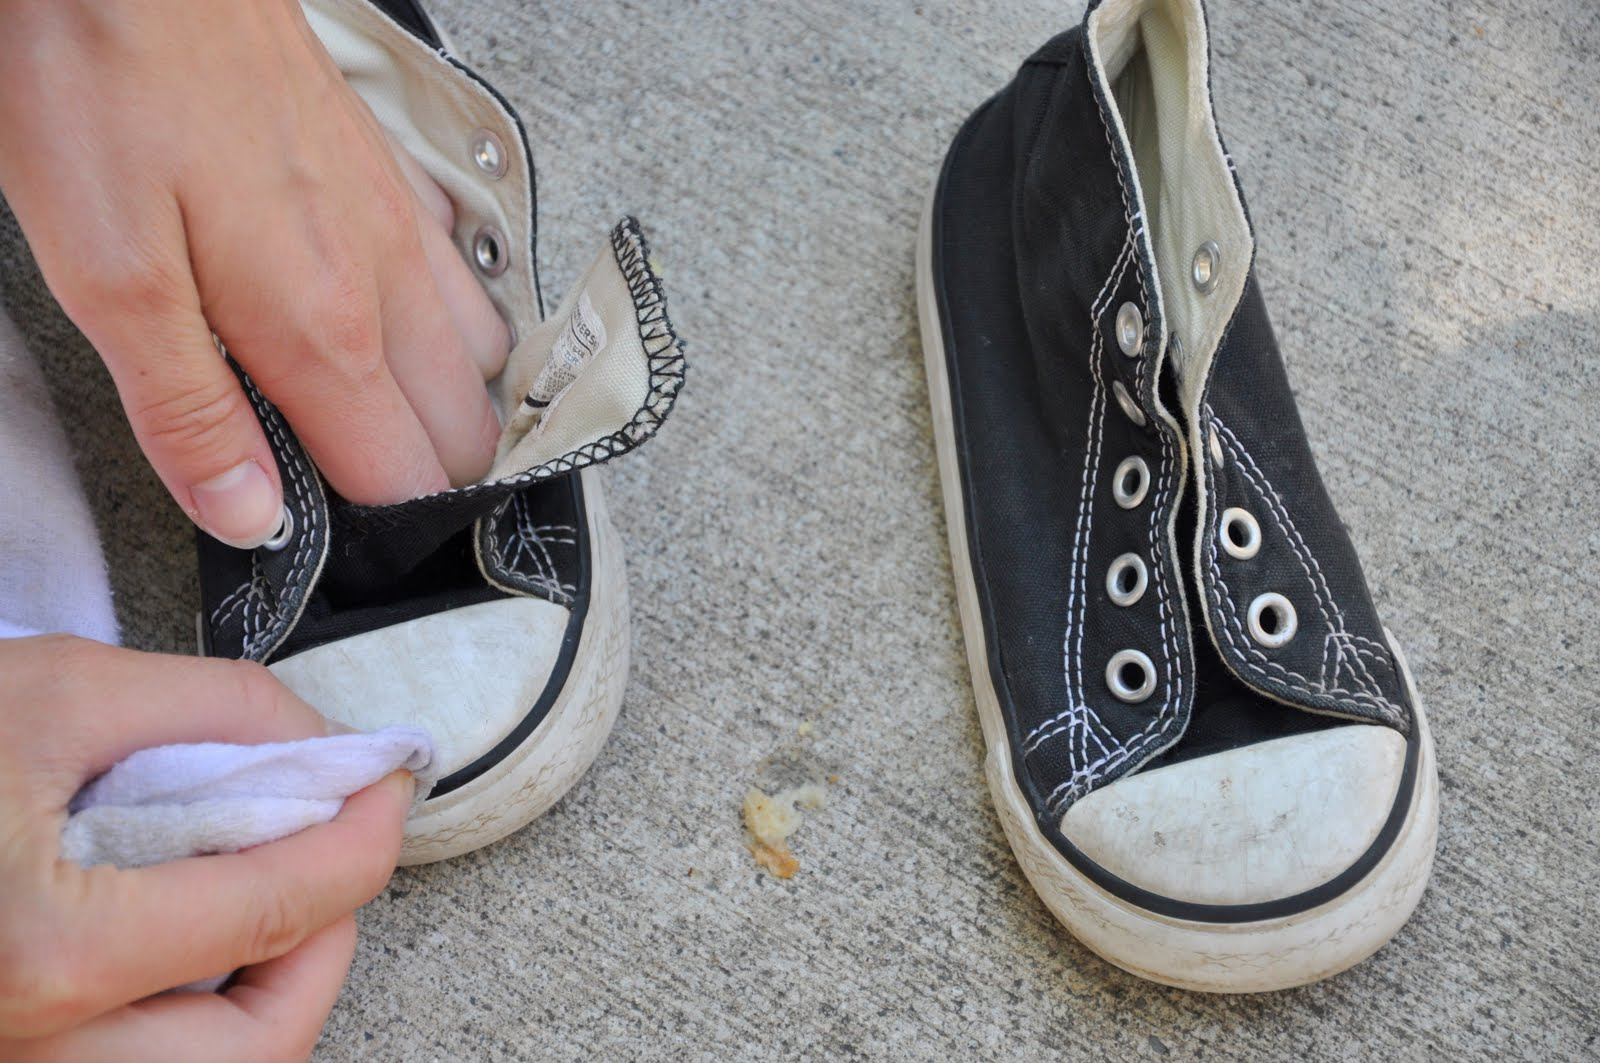 Making shoes look new how to clean shoes - How to clean shoes ...